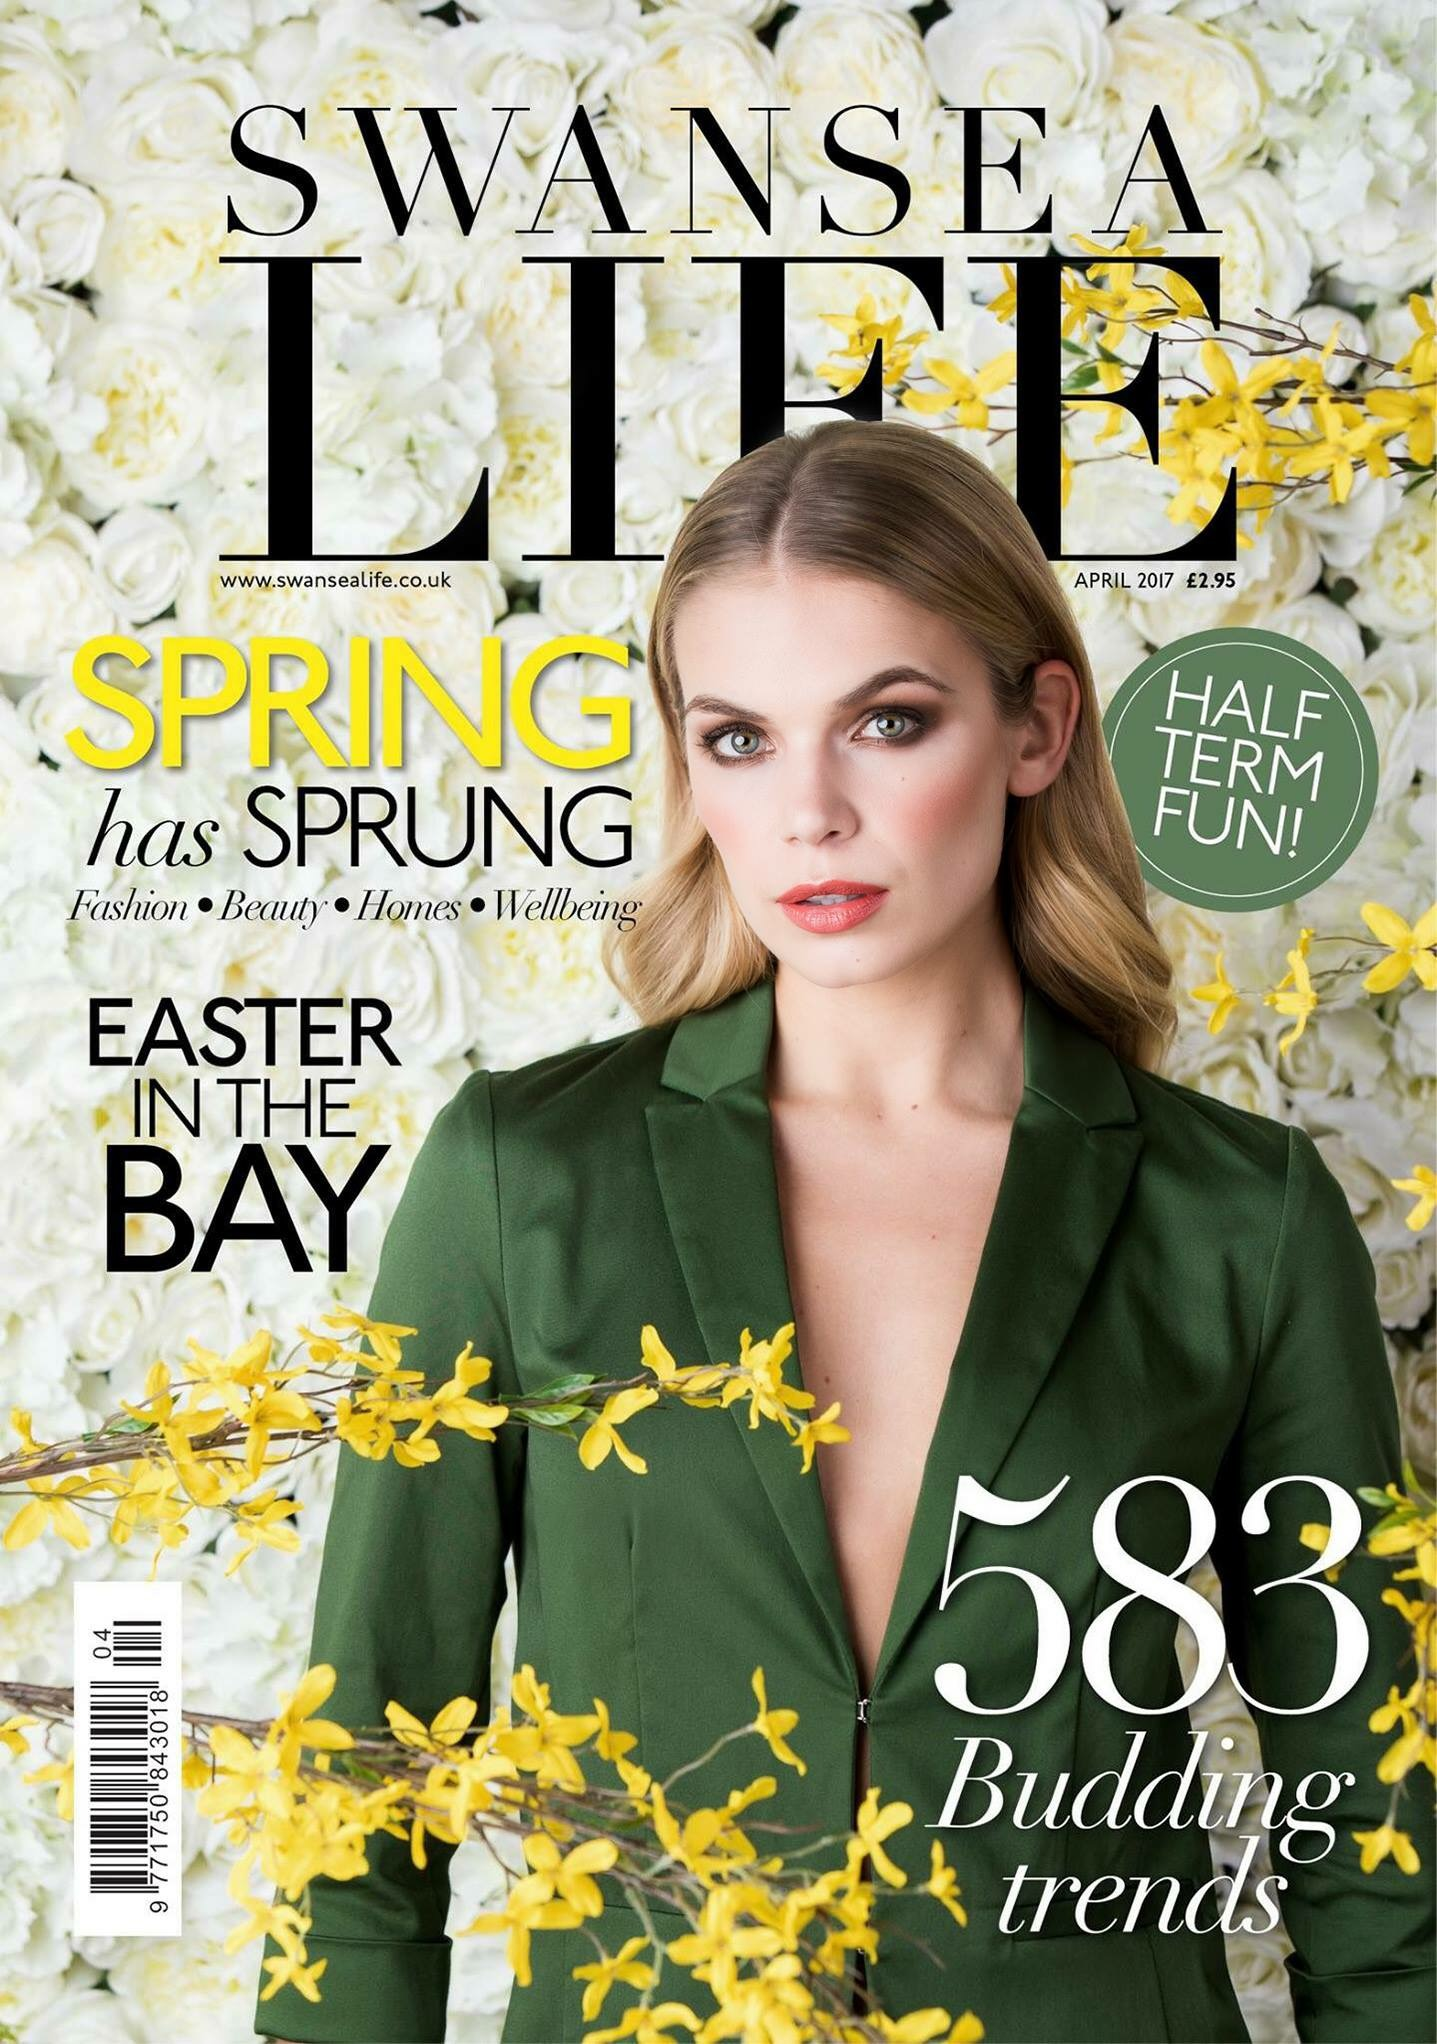 magazine spring editorial front wm shoot harris justin swansea flowers photographer glossy pink portrait